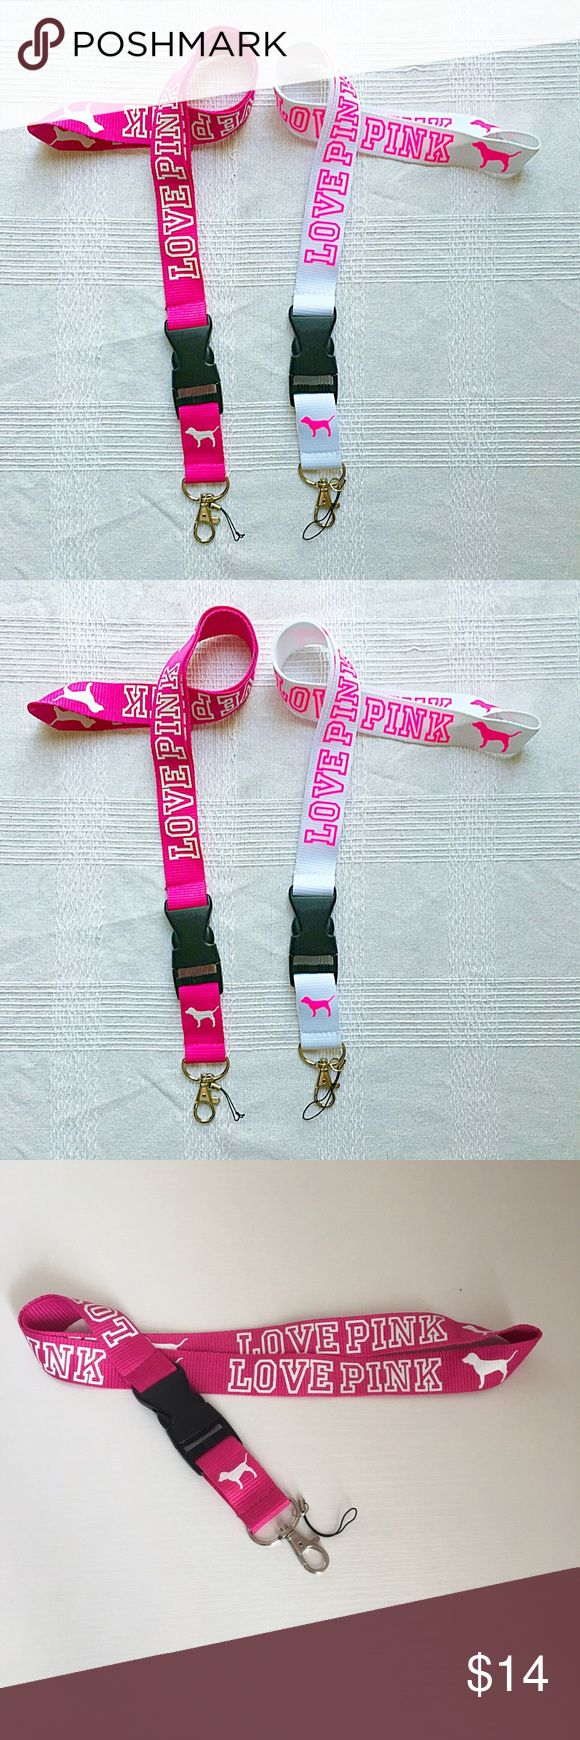 ✨2 LOVE PINK LANYARD✨ 2 NEW PINK lanyard!! Strong clasp and sturdy material! You have the awesome option to turn this lanyard into a super cute keychain! The font is printed in a sharp color and printed in a fabulous font!! PINK Victoria's Secret Accessories